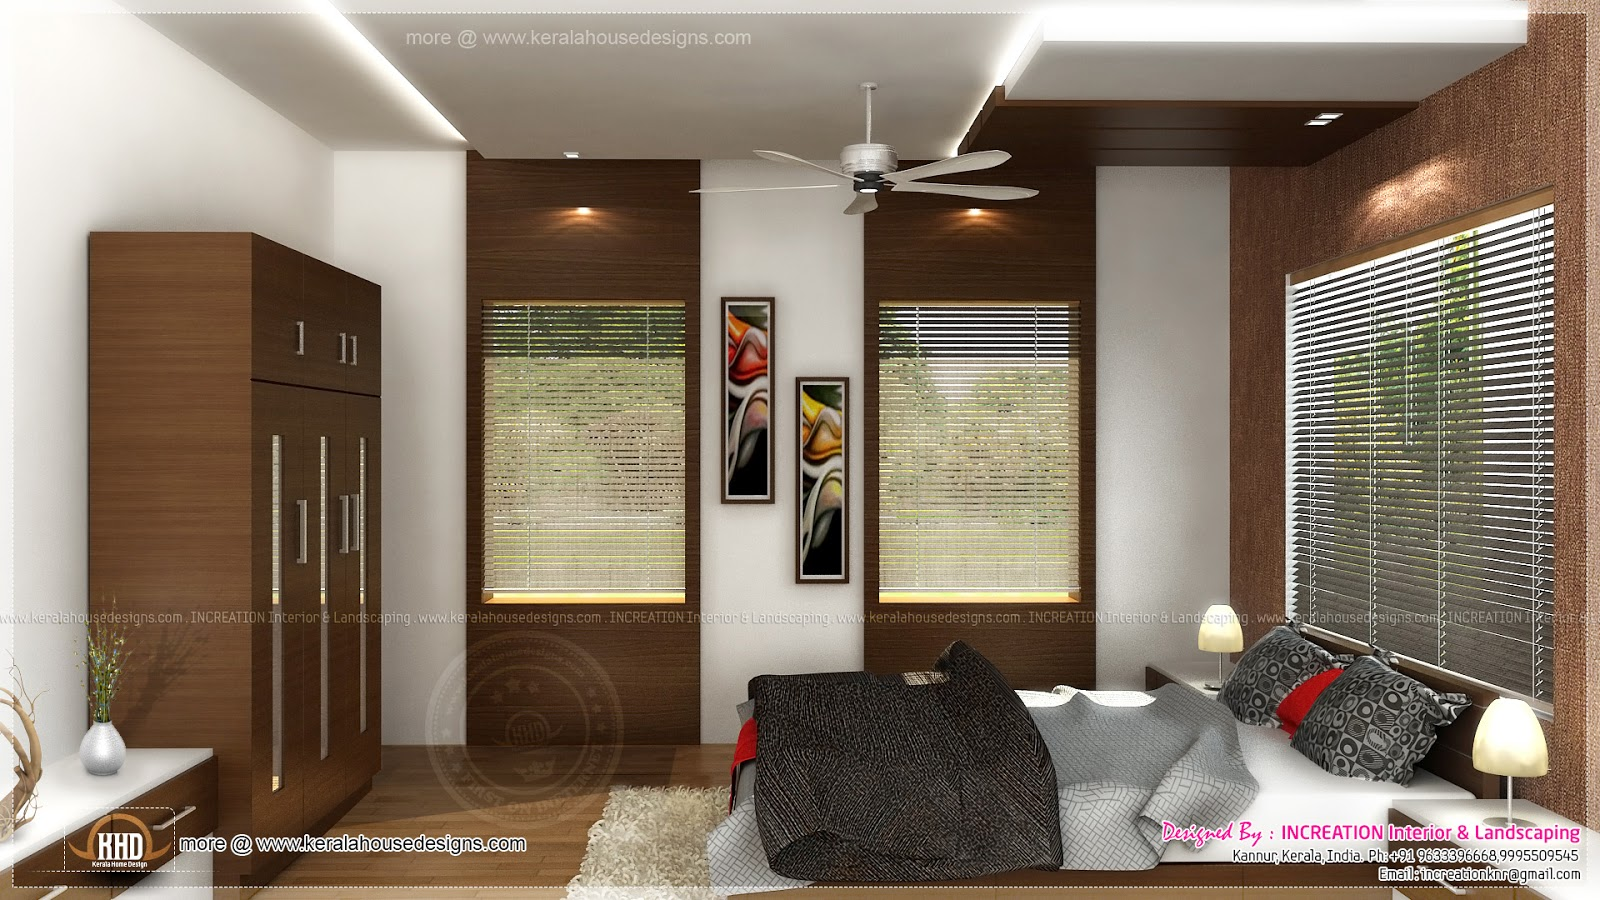 Interior designs from kannur kerala kerala home design for Home interior design photo gallery